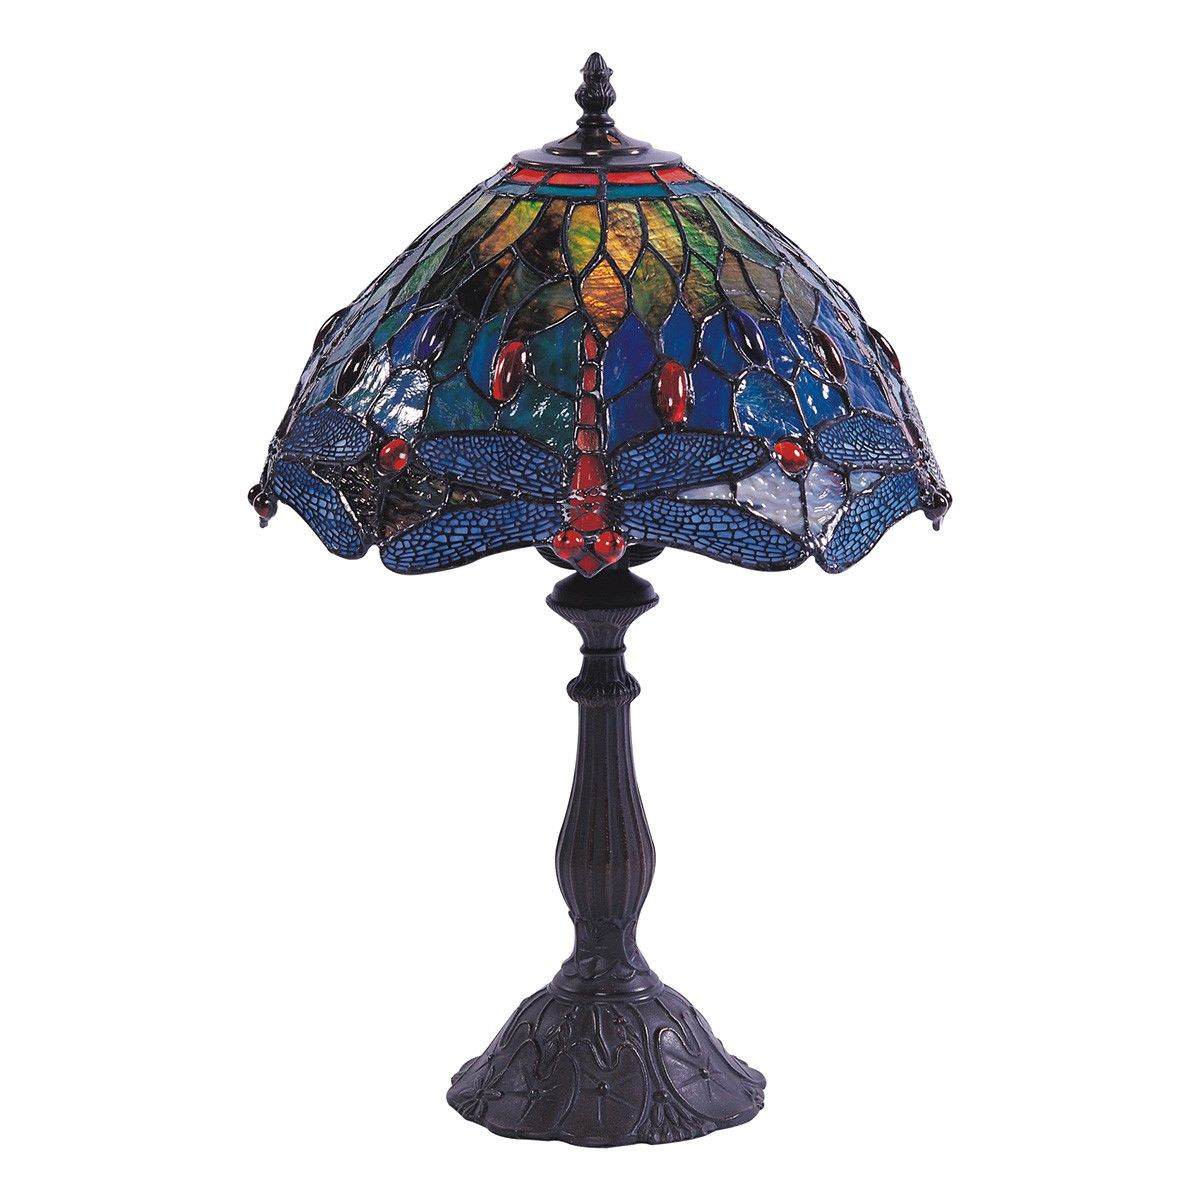 Fantasy Dragonfly Tiffany Style Stained Glass Table Lamp, Medium, Blue / Green